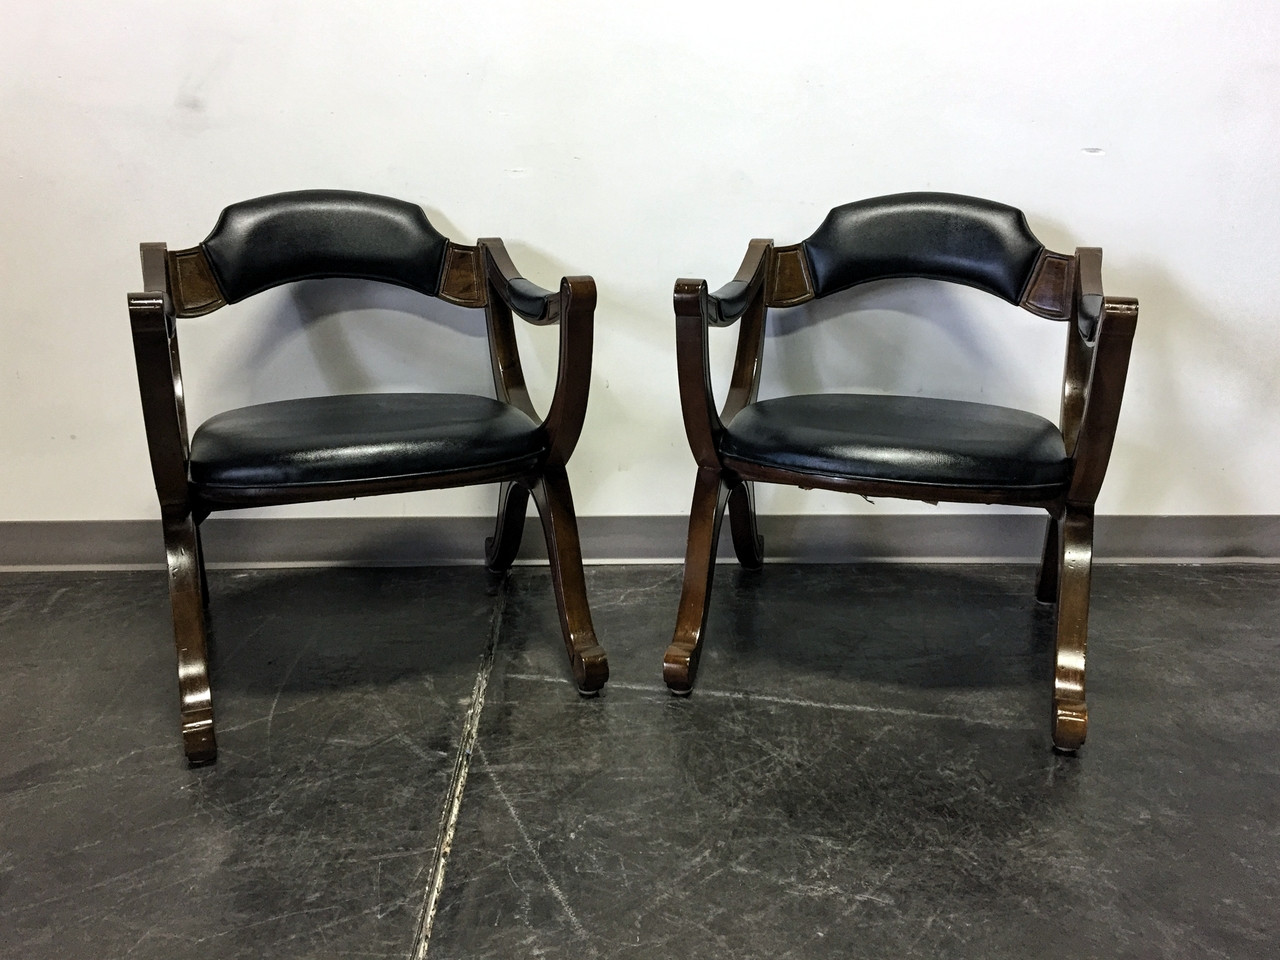 drexel heritage chairs metal stool chair cushion sold out mid century era esperanto x frame pair 1